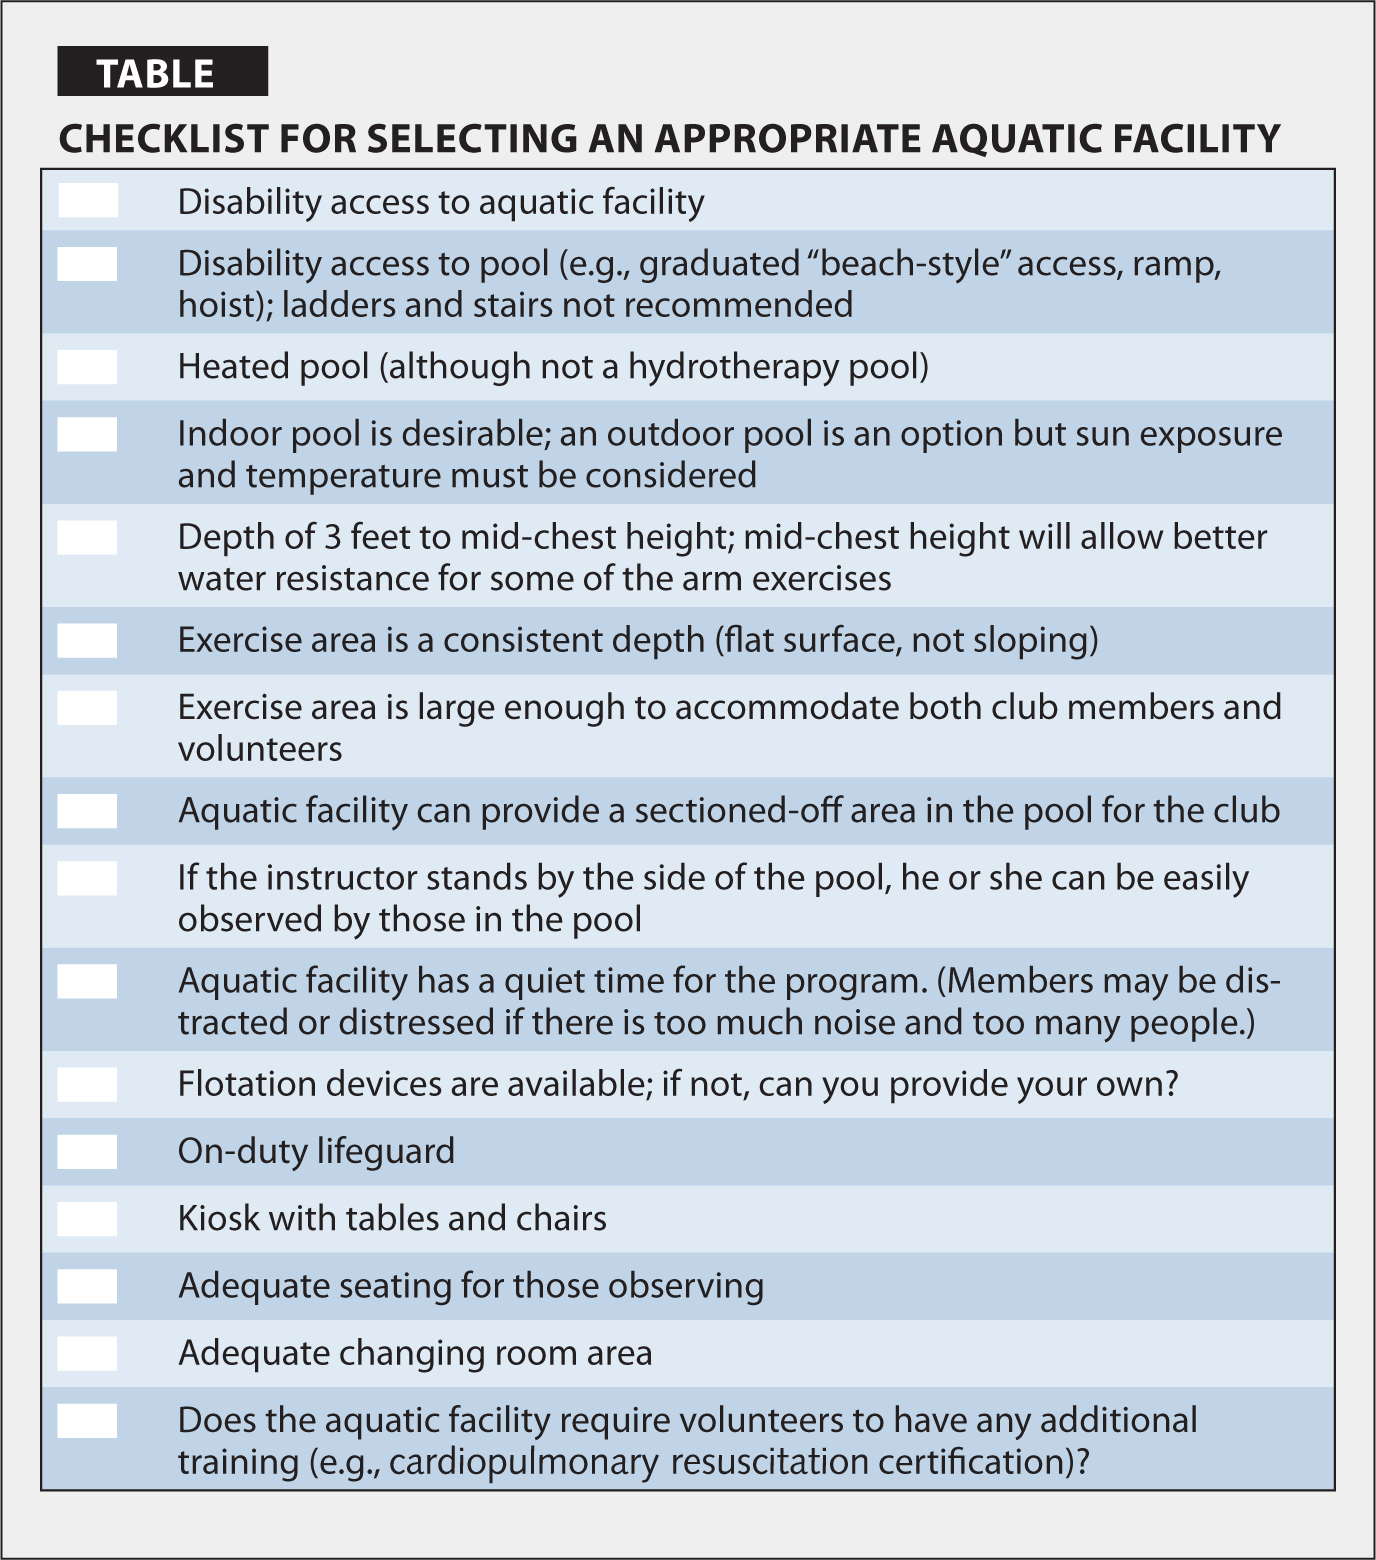 Checklist For Selecting An Appropriate Aquatic Facility